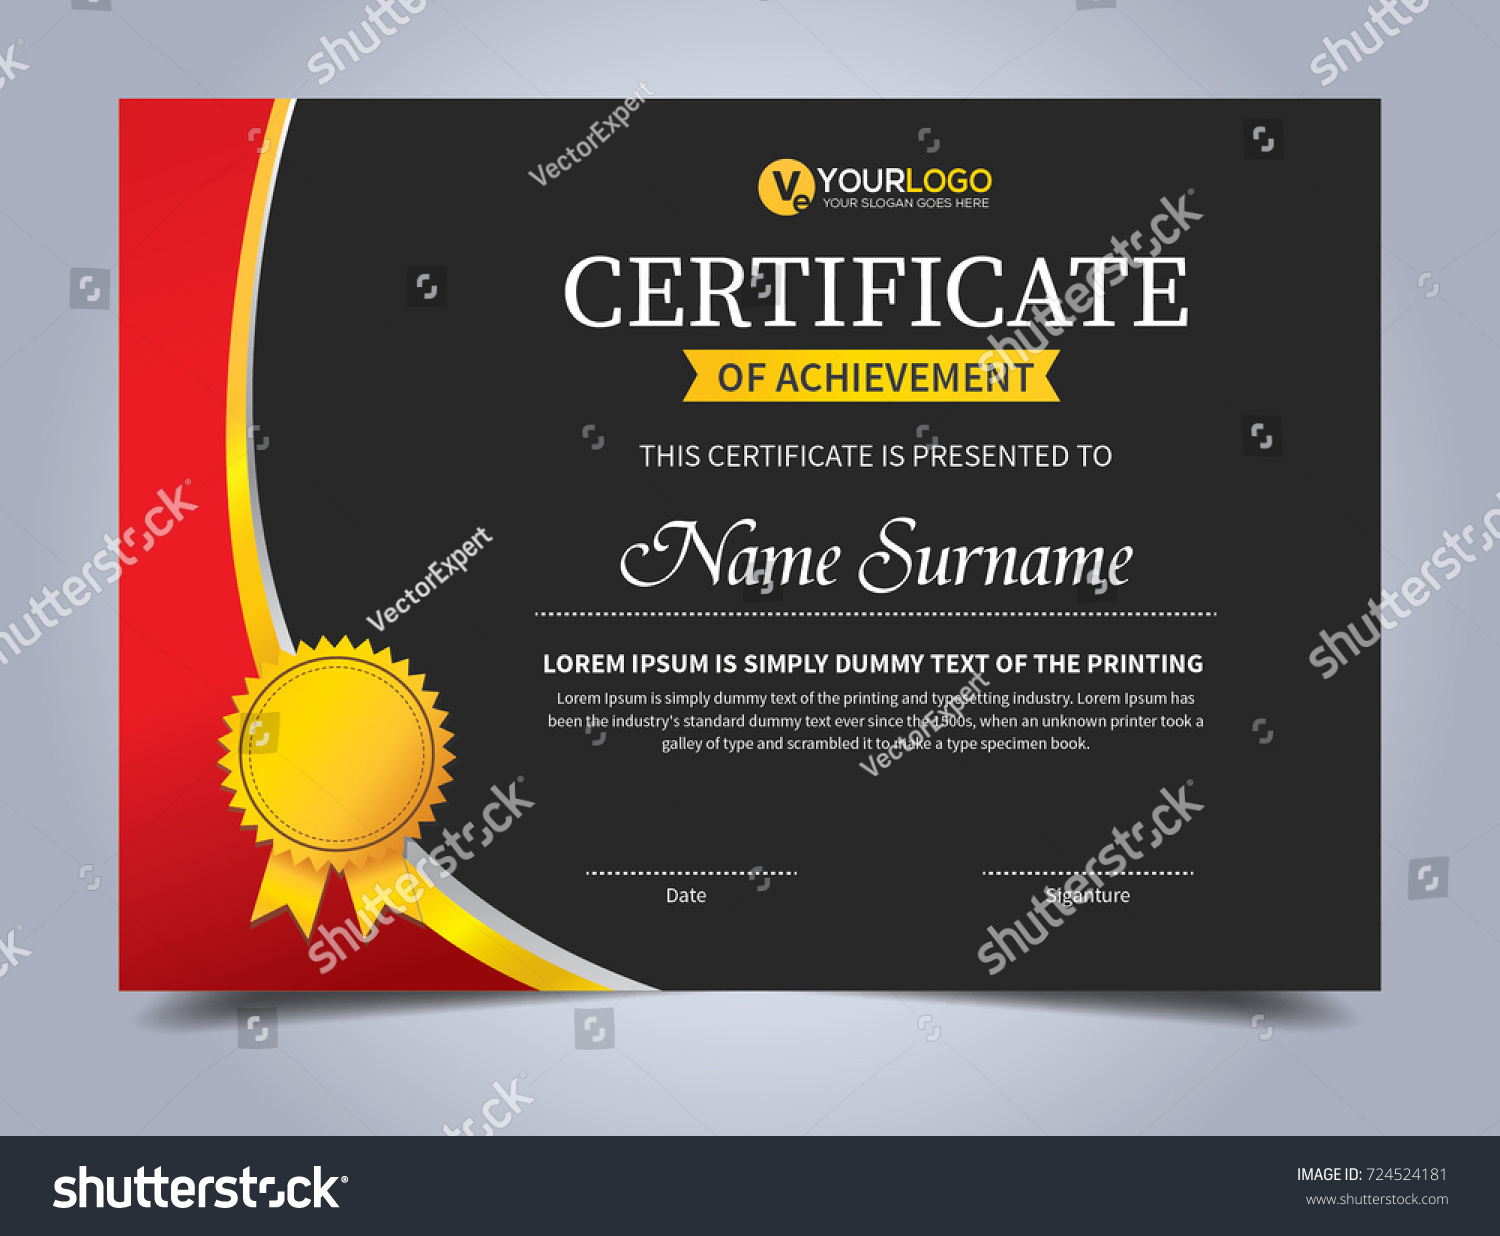 Modern creative certificate appreciation award template stock photo modern creative certificate of appreciation award template with red and golden shapes yelopaper Image collections